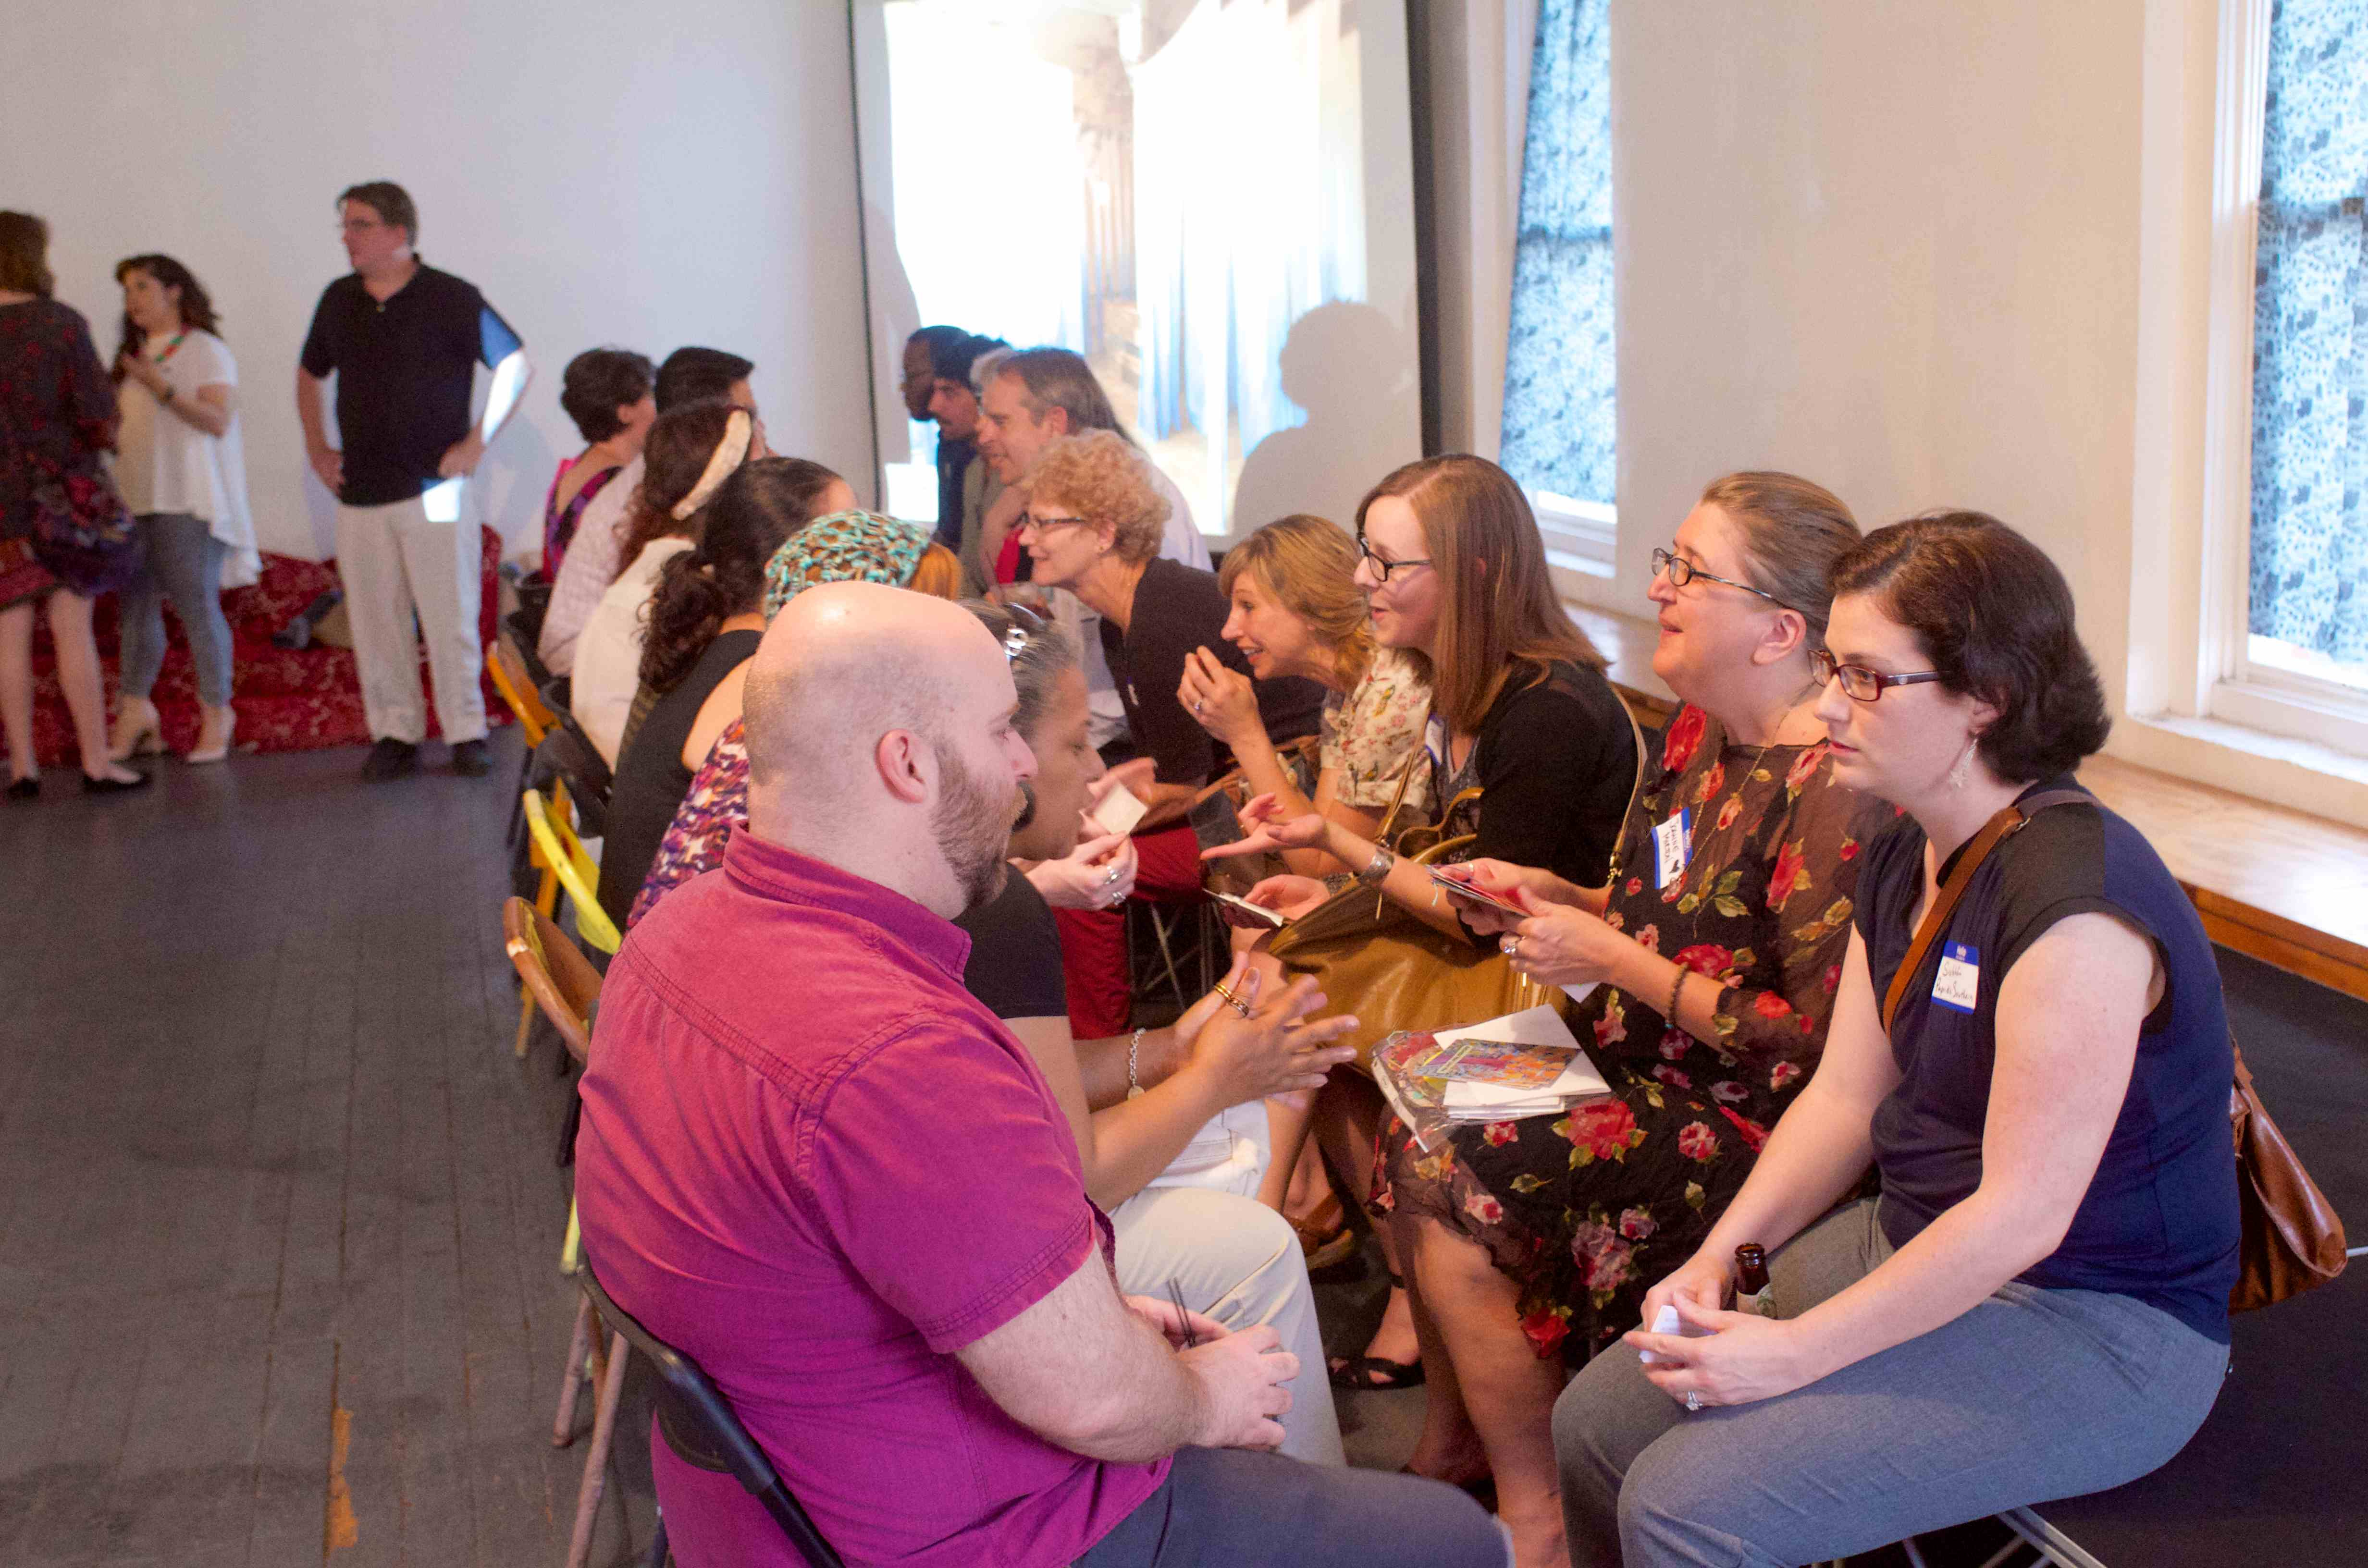 speed dating style User story review speed dating style 26th october 2016 by songsta if you find yourself on a large agile transformation programme, one of the issues you'll probably struggle with is ensuring good quality user stories across many feature teams.